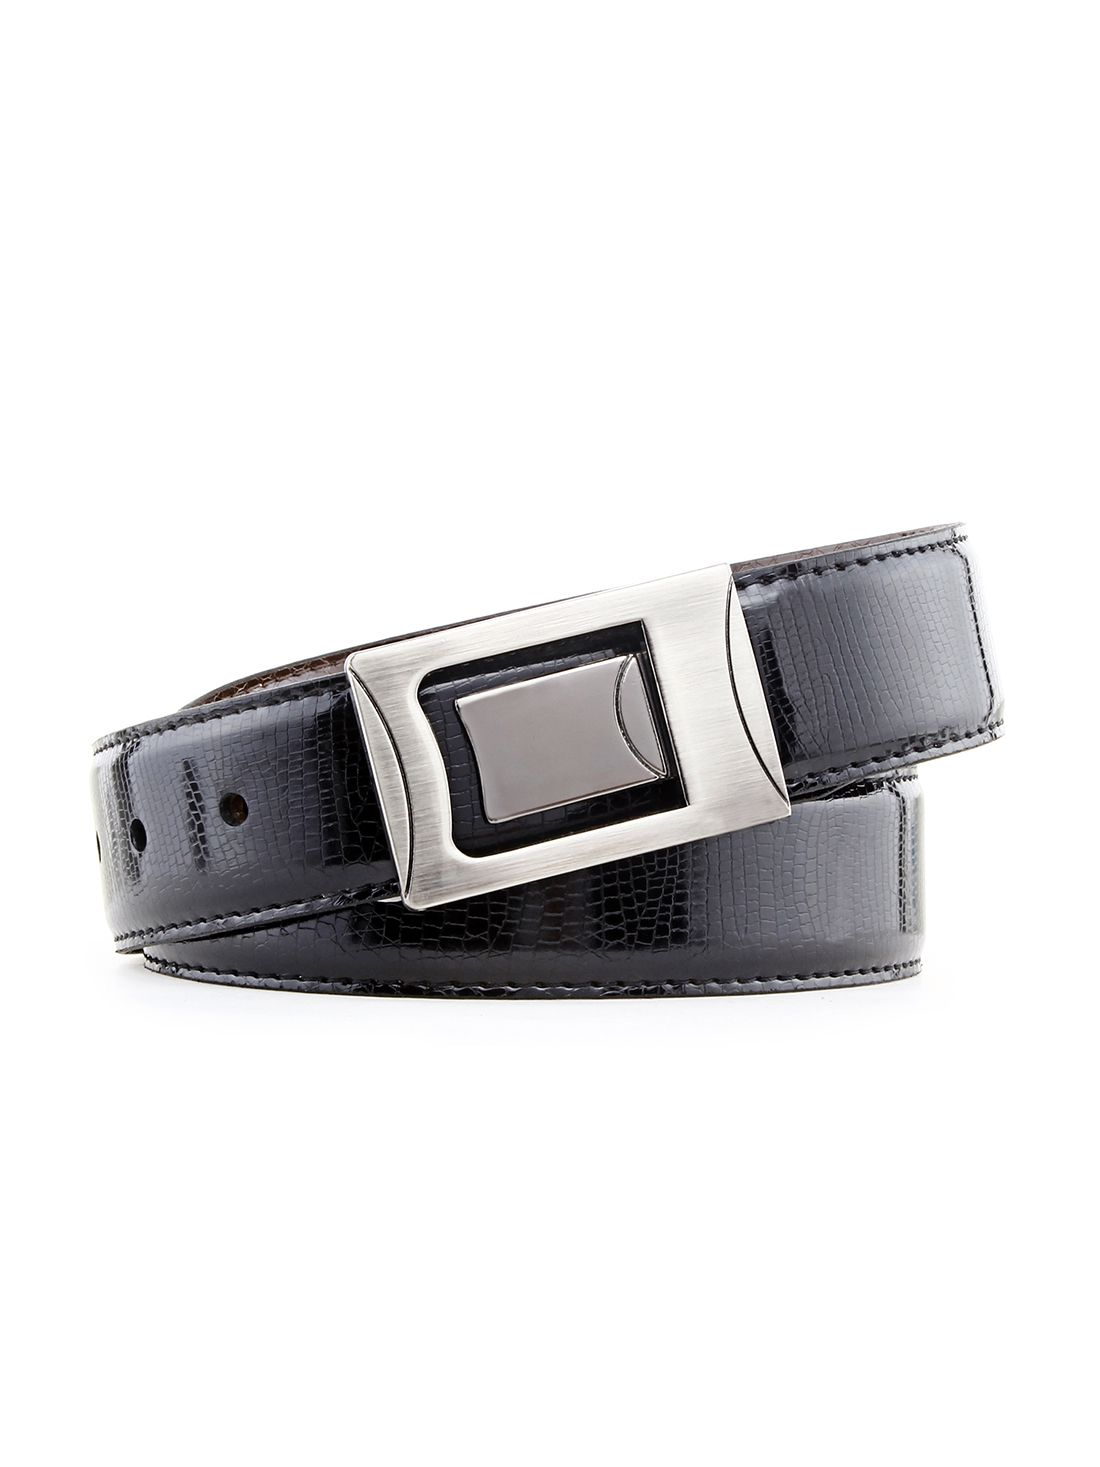 Rhino Black Reversible Belt for Men